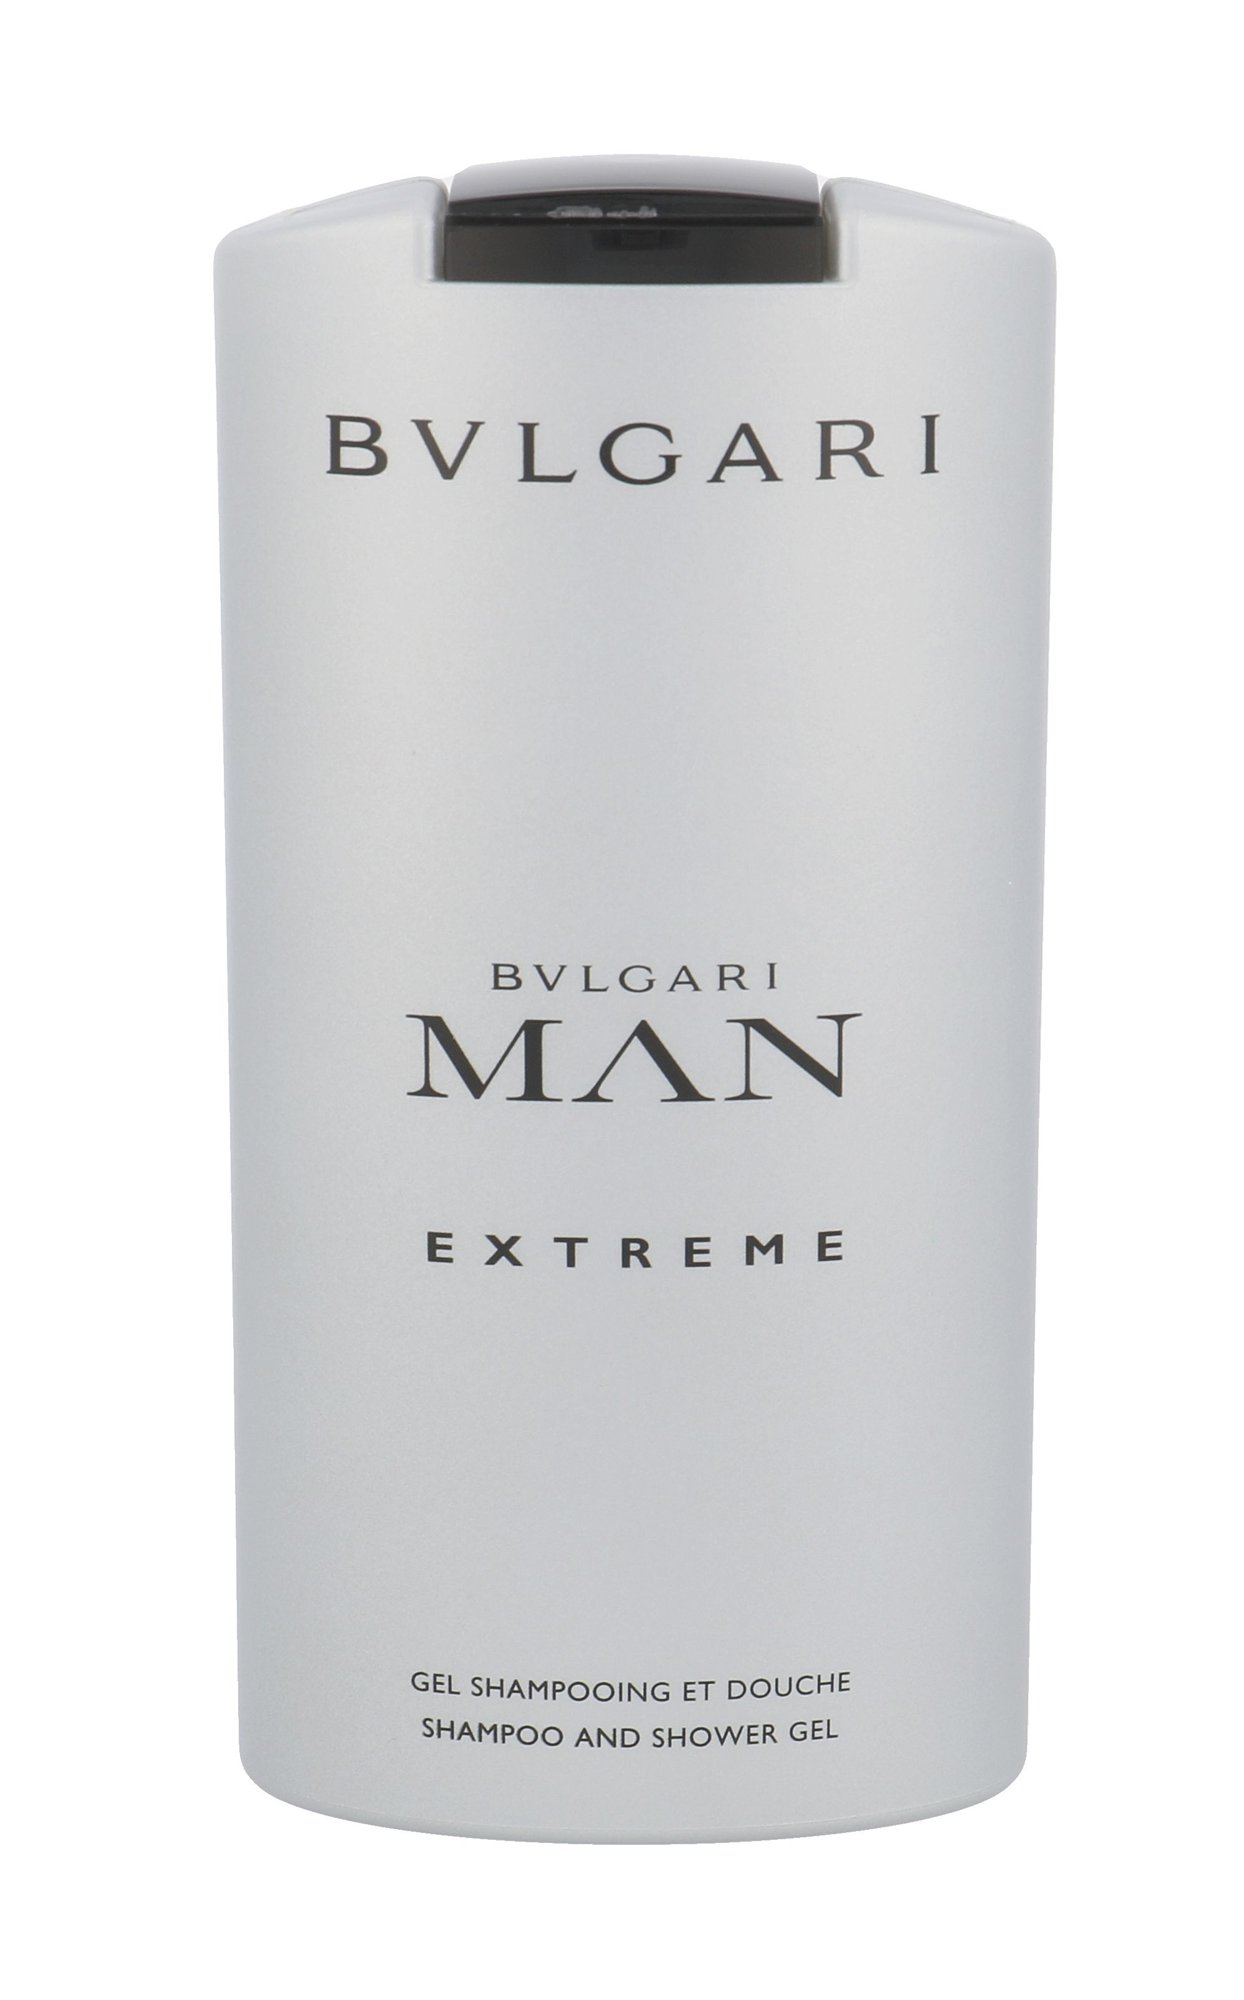 Bvlgari Bvlgari Man Extreme Shower gel 200ml